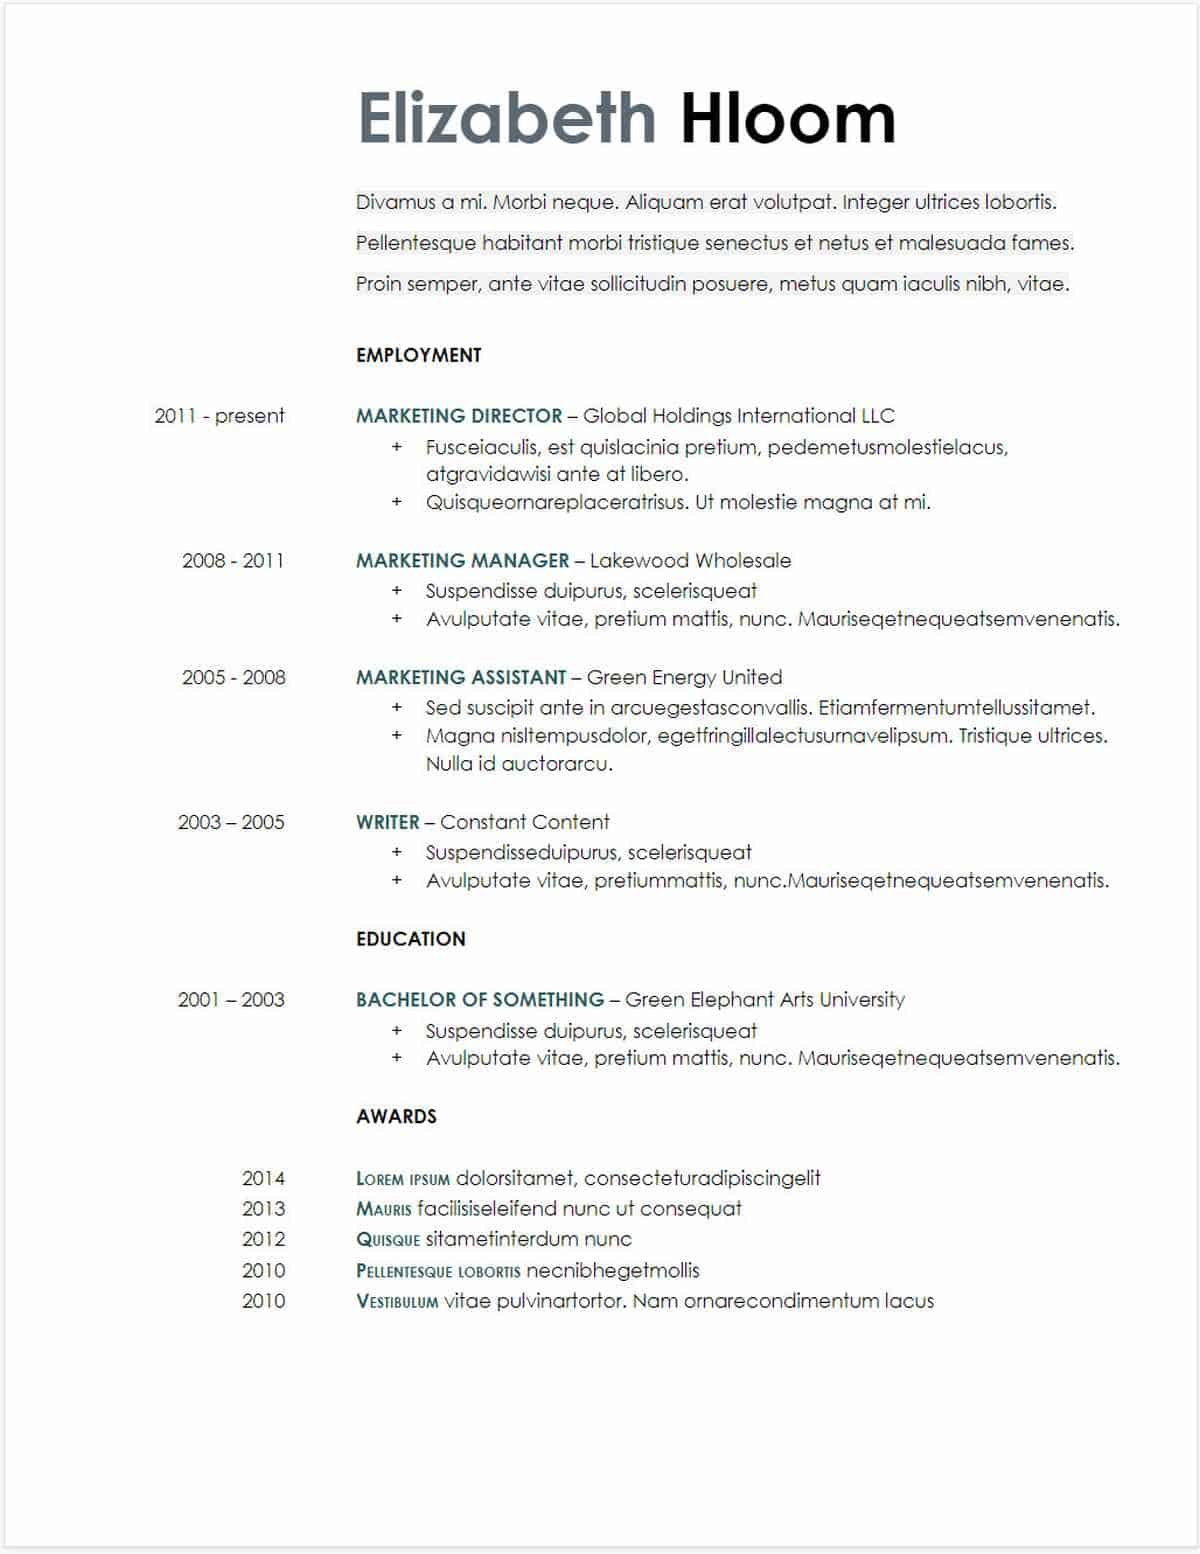 google docs resume templates downloadable pdfs making on blue side gdoc template free Resume Making A Resume On Google Docs